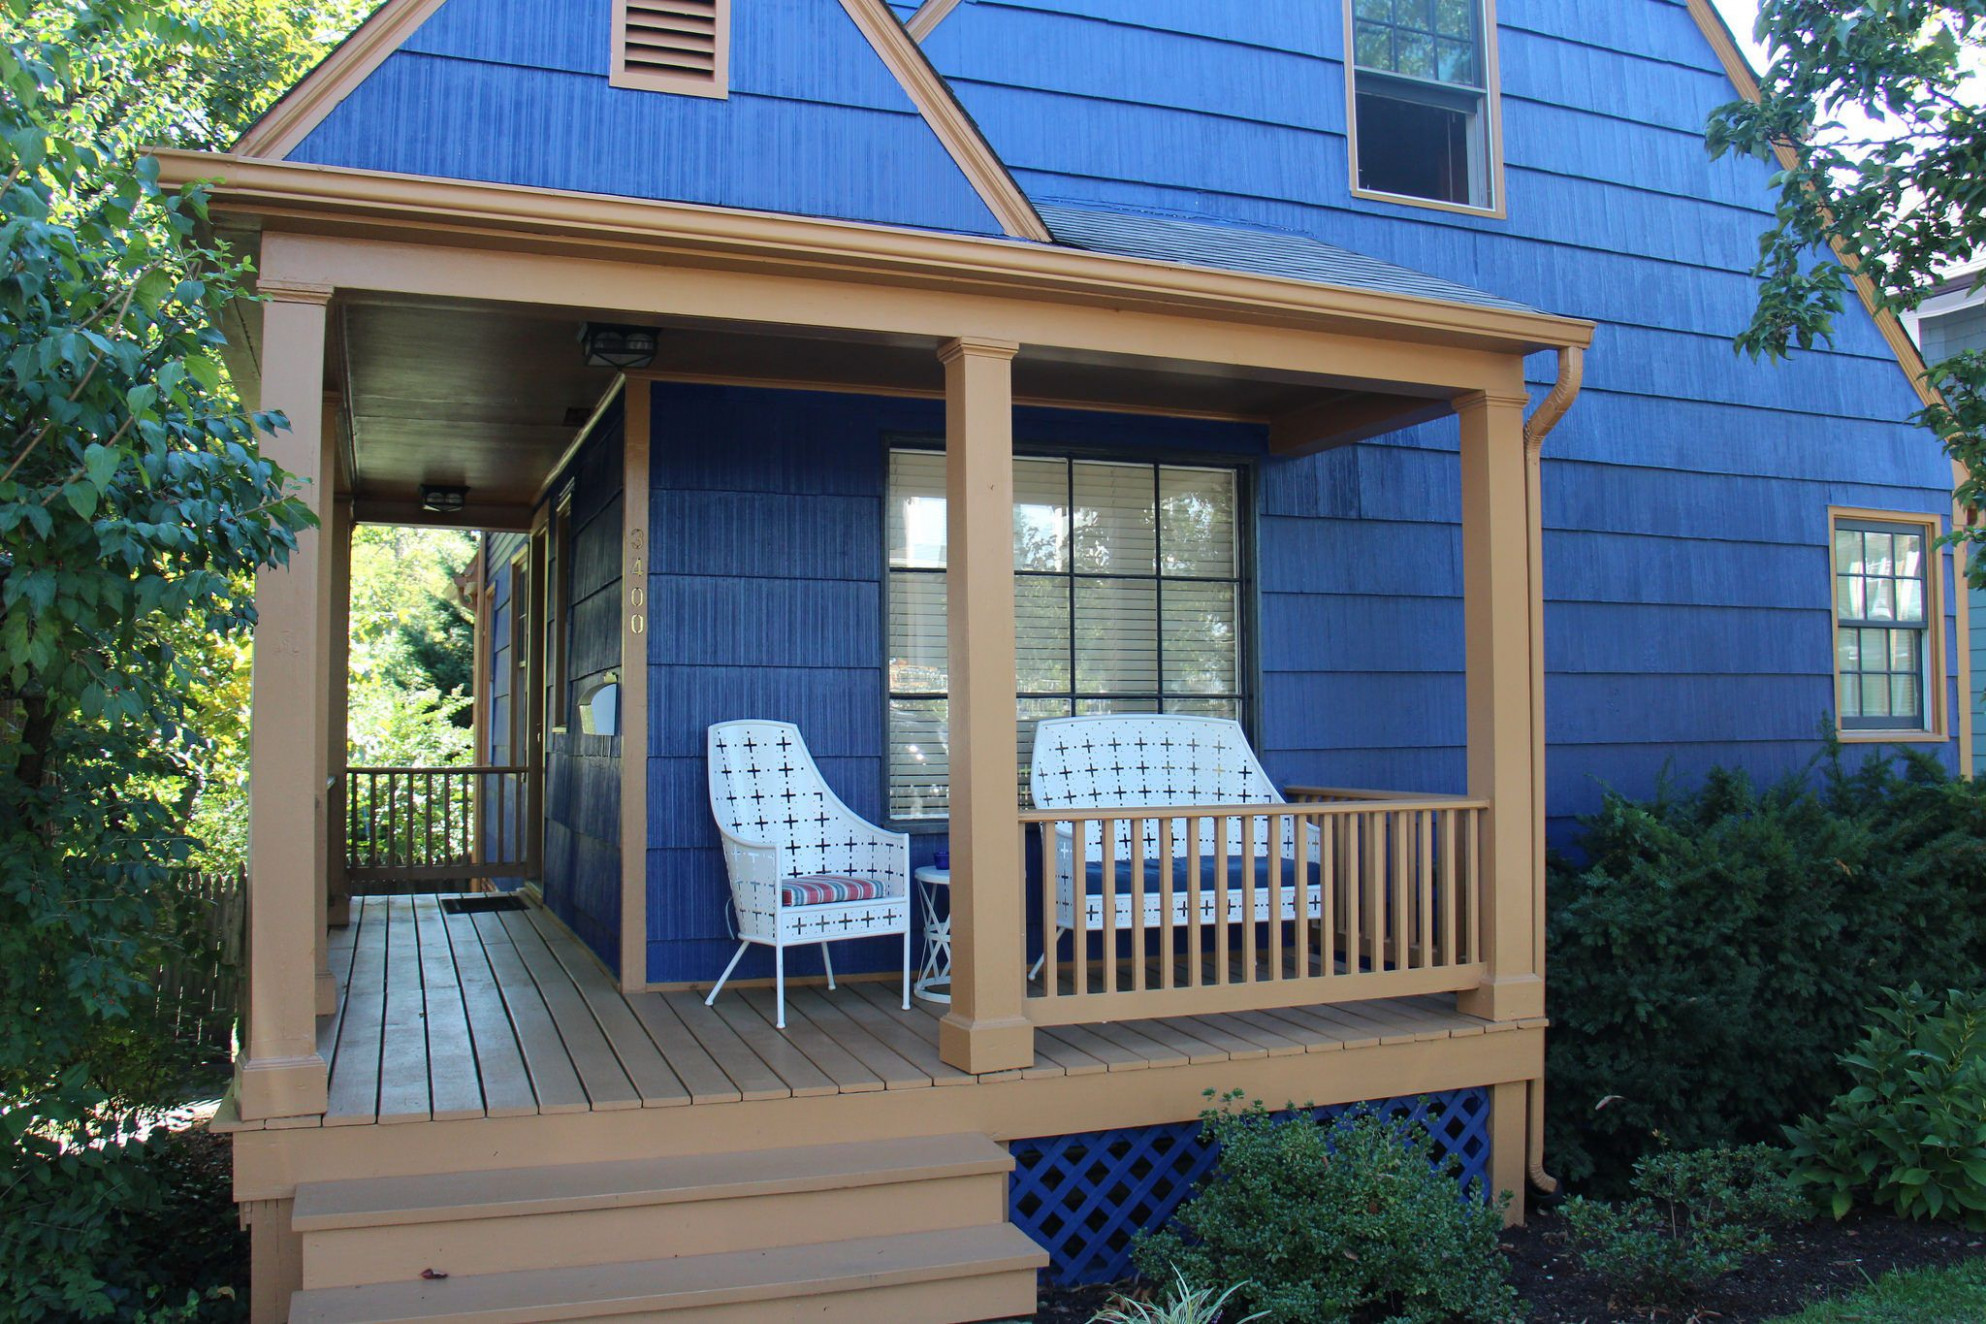 7 Porch Ideas For Every Type Of Home Deck Above Carport Ideas